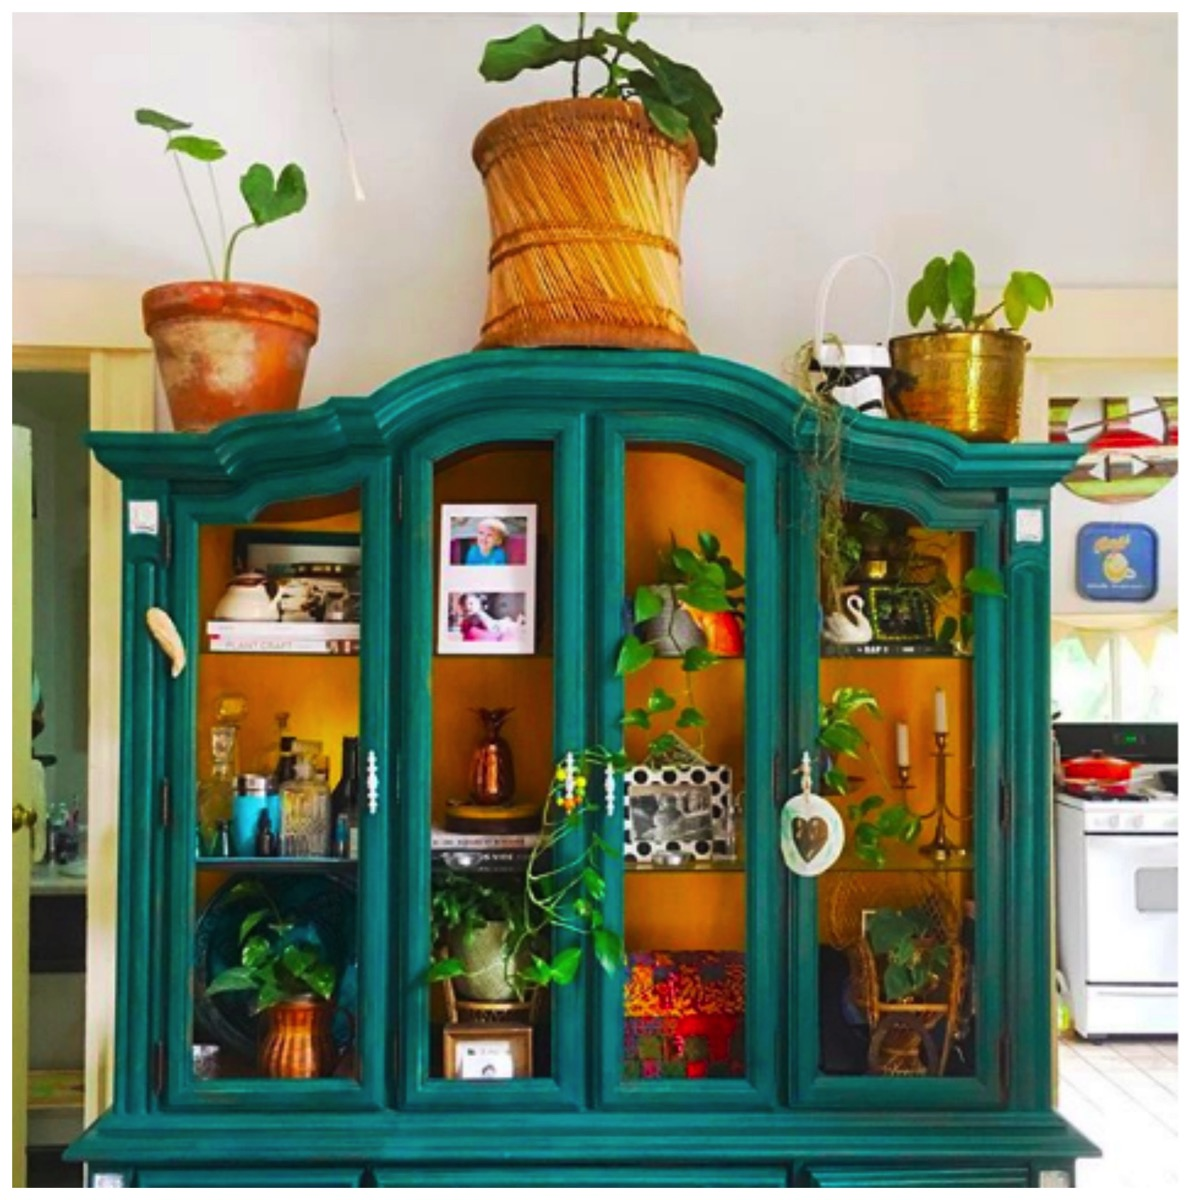 Teal colored boho cabinet Augusta Isabelle Wheeler thrifty hippie